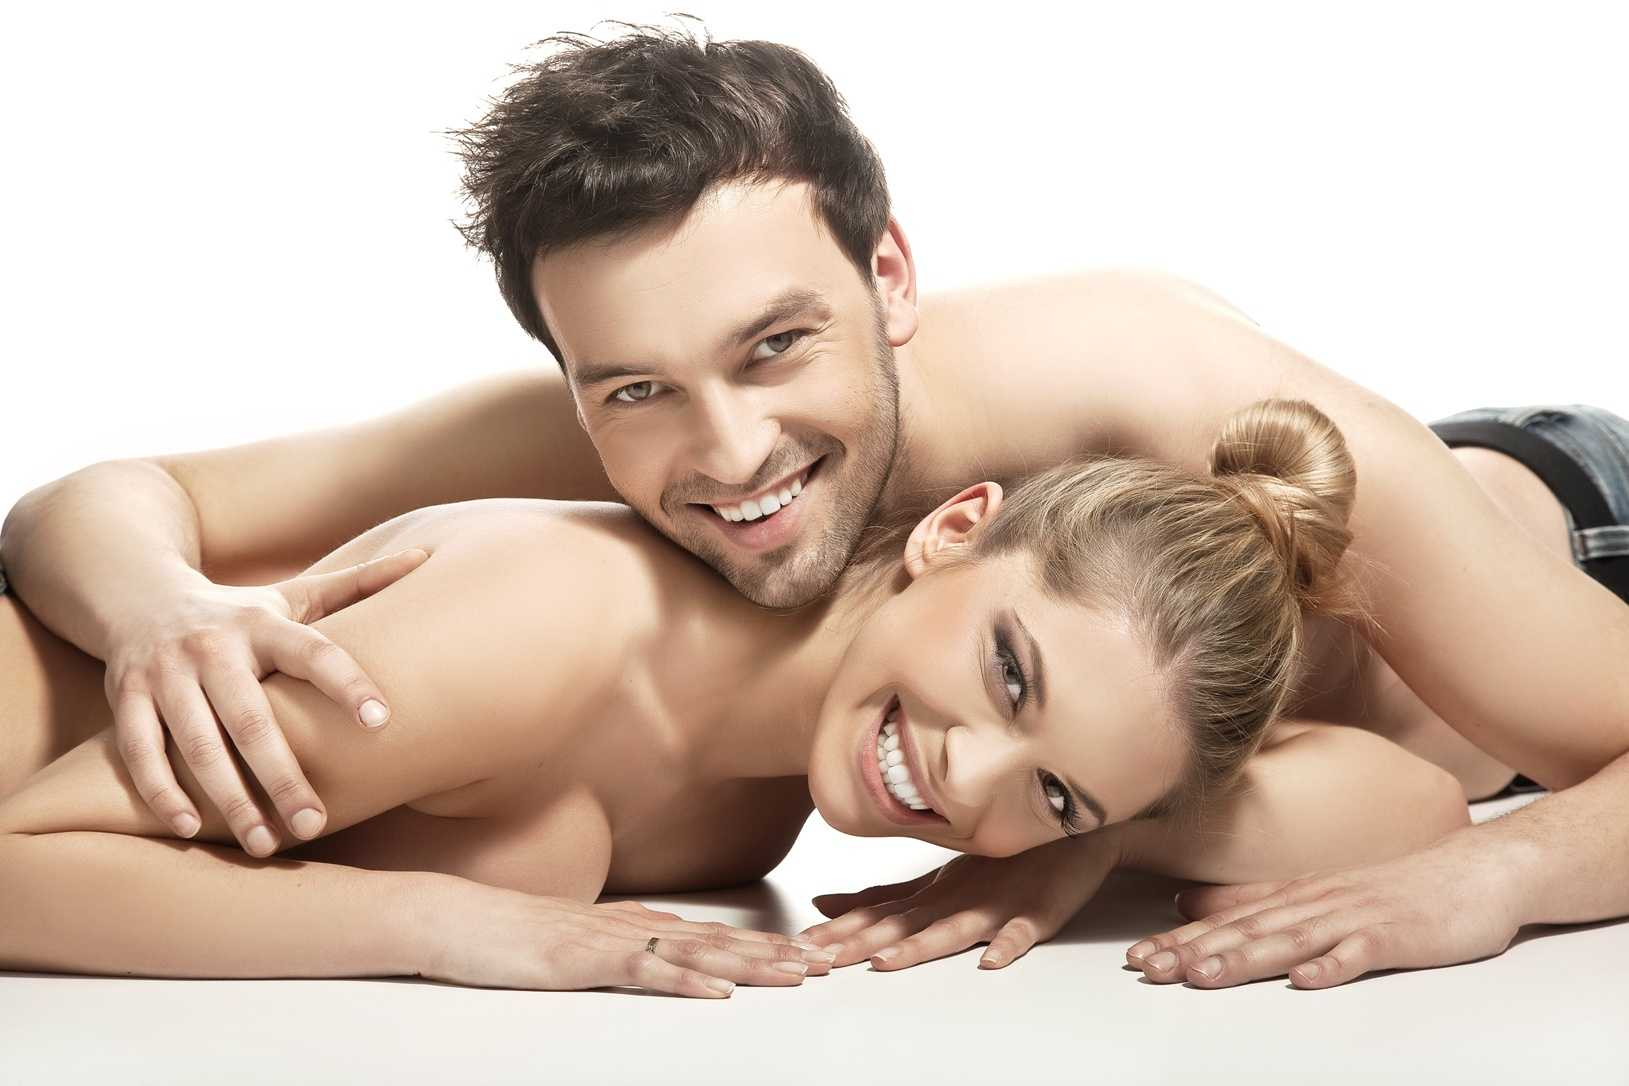 Specialist skin, laser and body clinic, health + aesthetics, Farnham PRP therapy